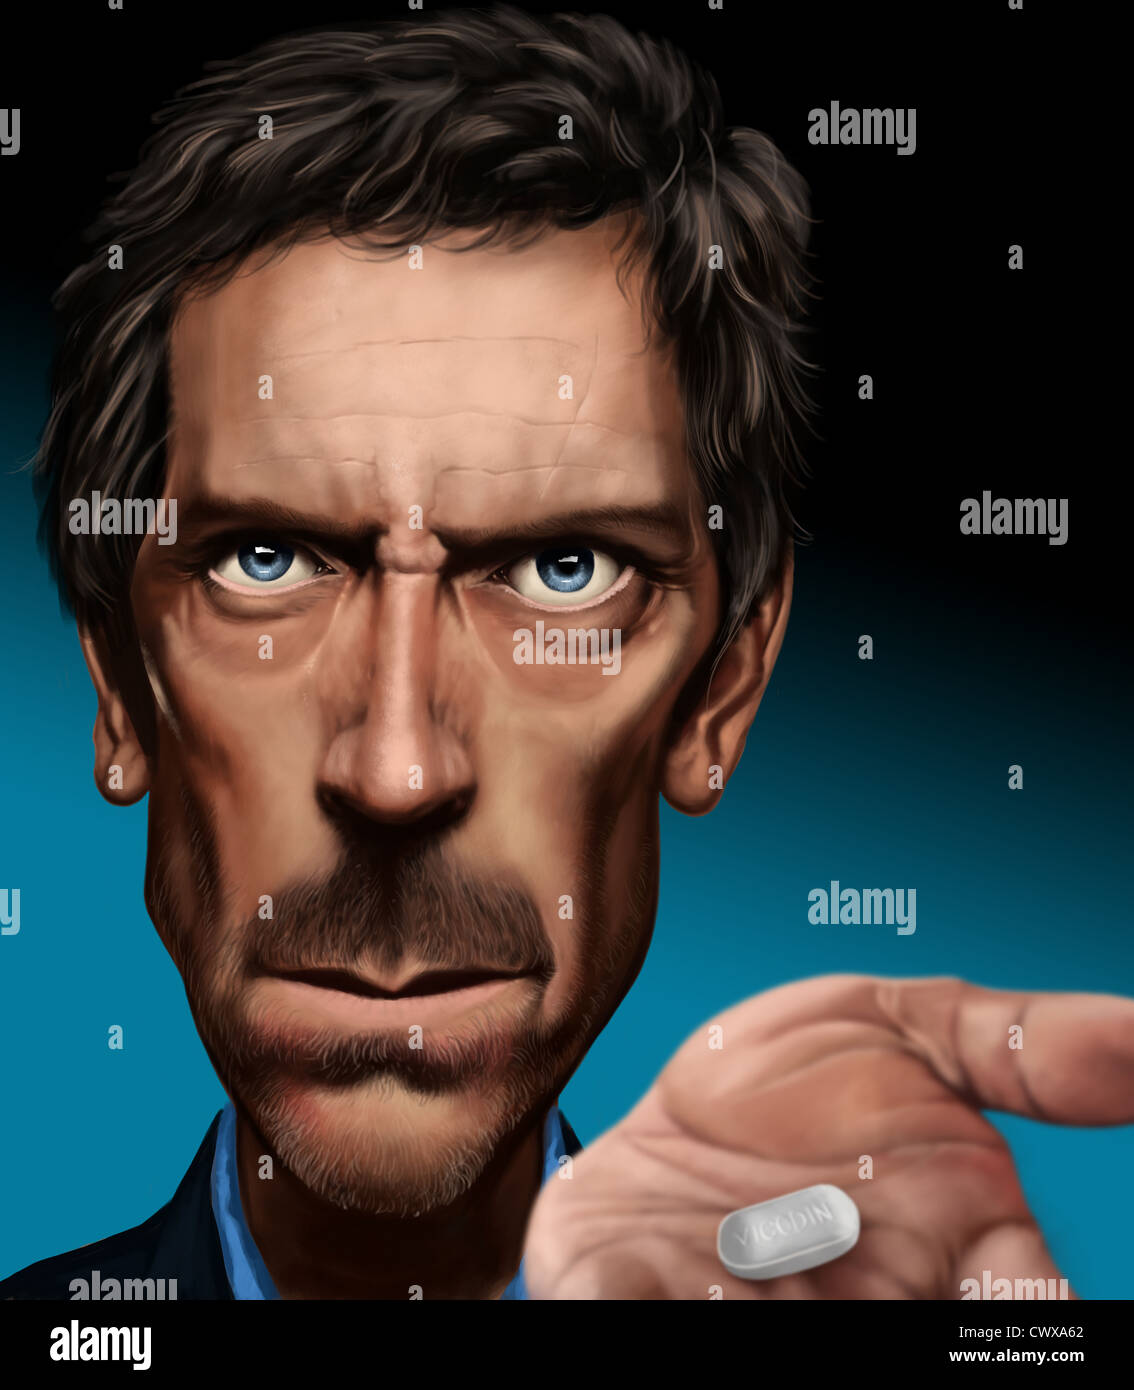 Caricature from actor Hugh Laurie, digital painted image - Stock Image